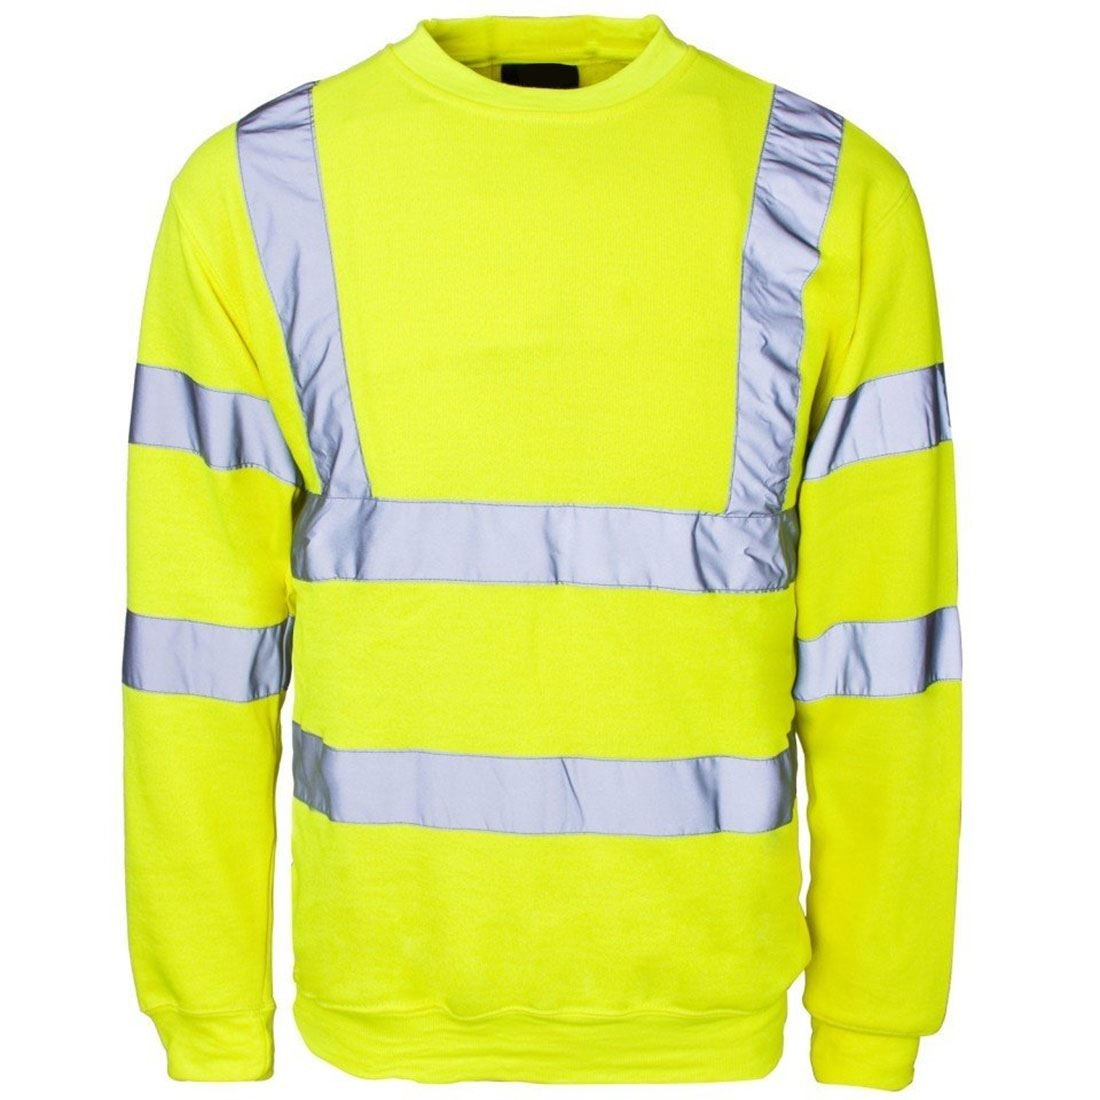 Mens Long Sleeve Hi Vis Sweatshirt with Ribbed Hem Neck Adults Work Wear Top Small-4XLarge MA ONLINE